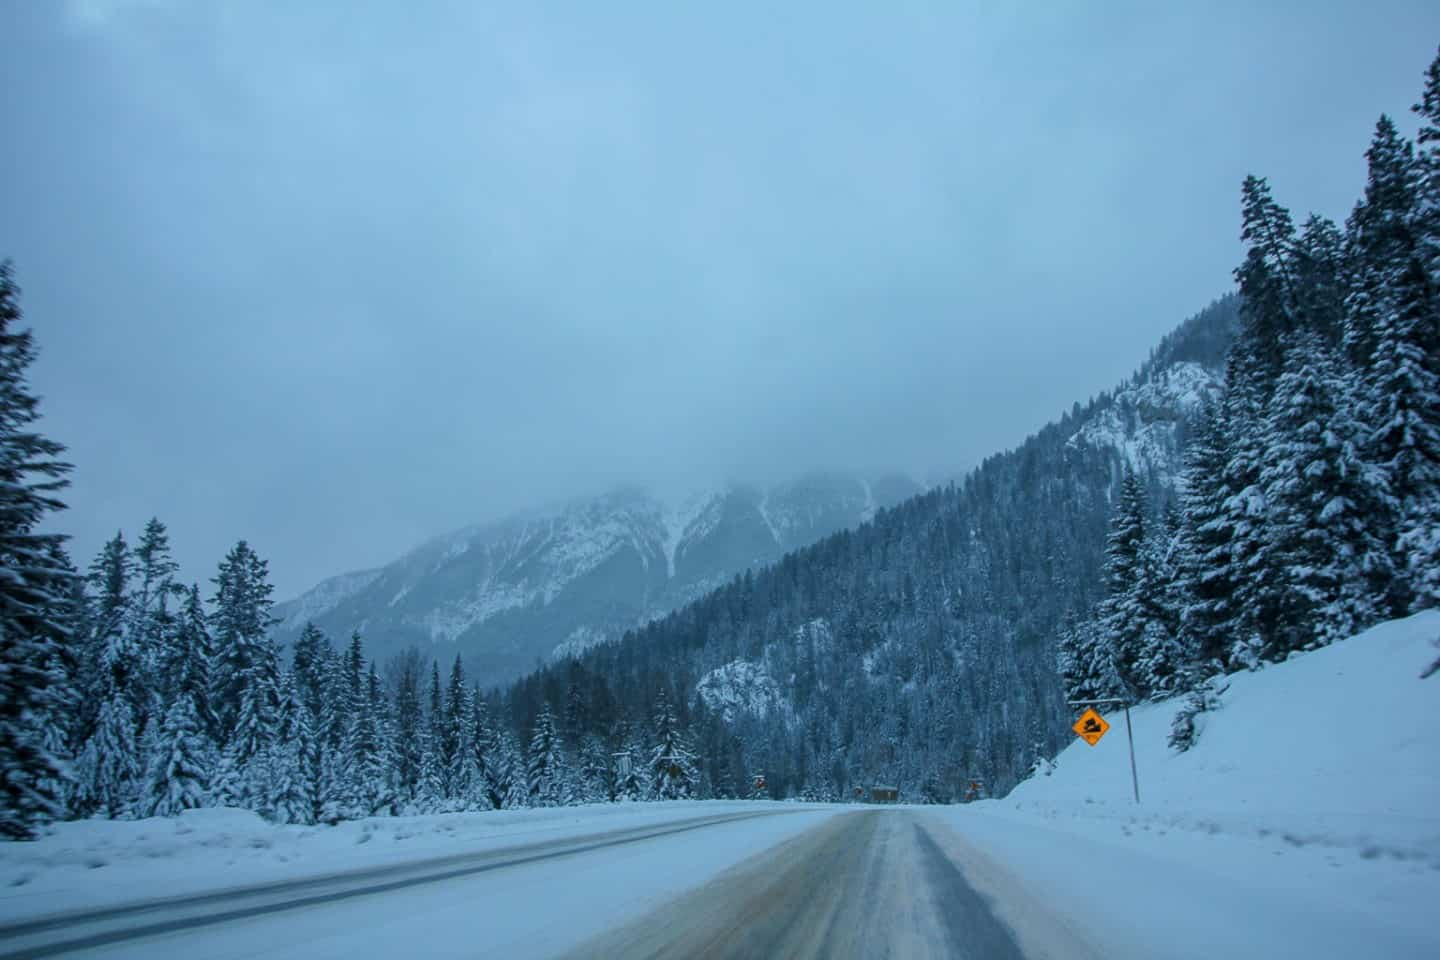 Road tripping in all seasons is one of the major reasons to visit Canada